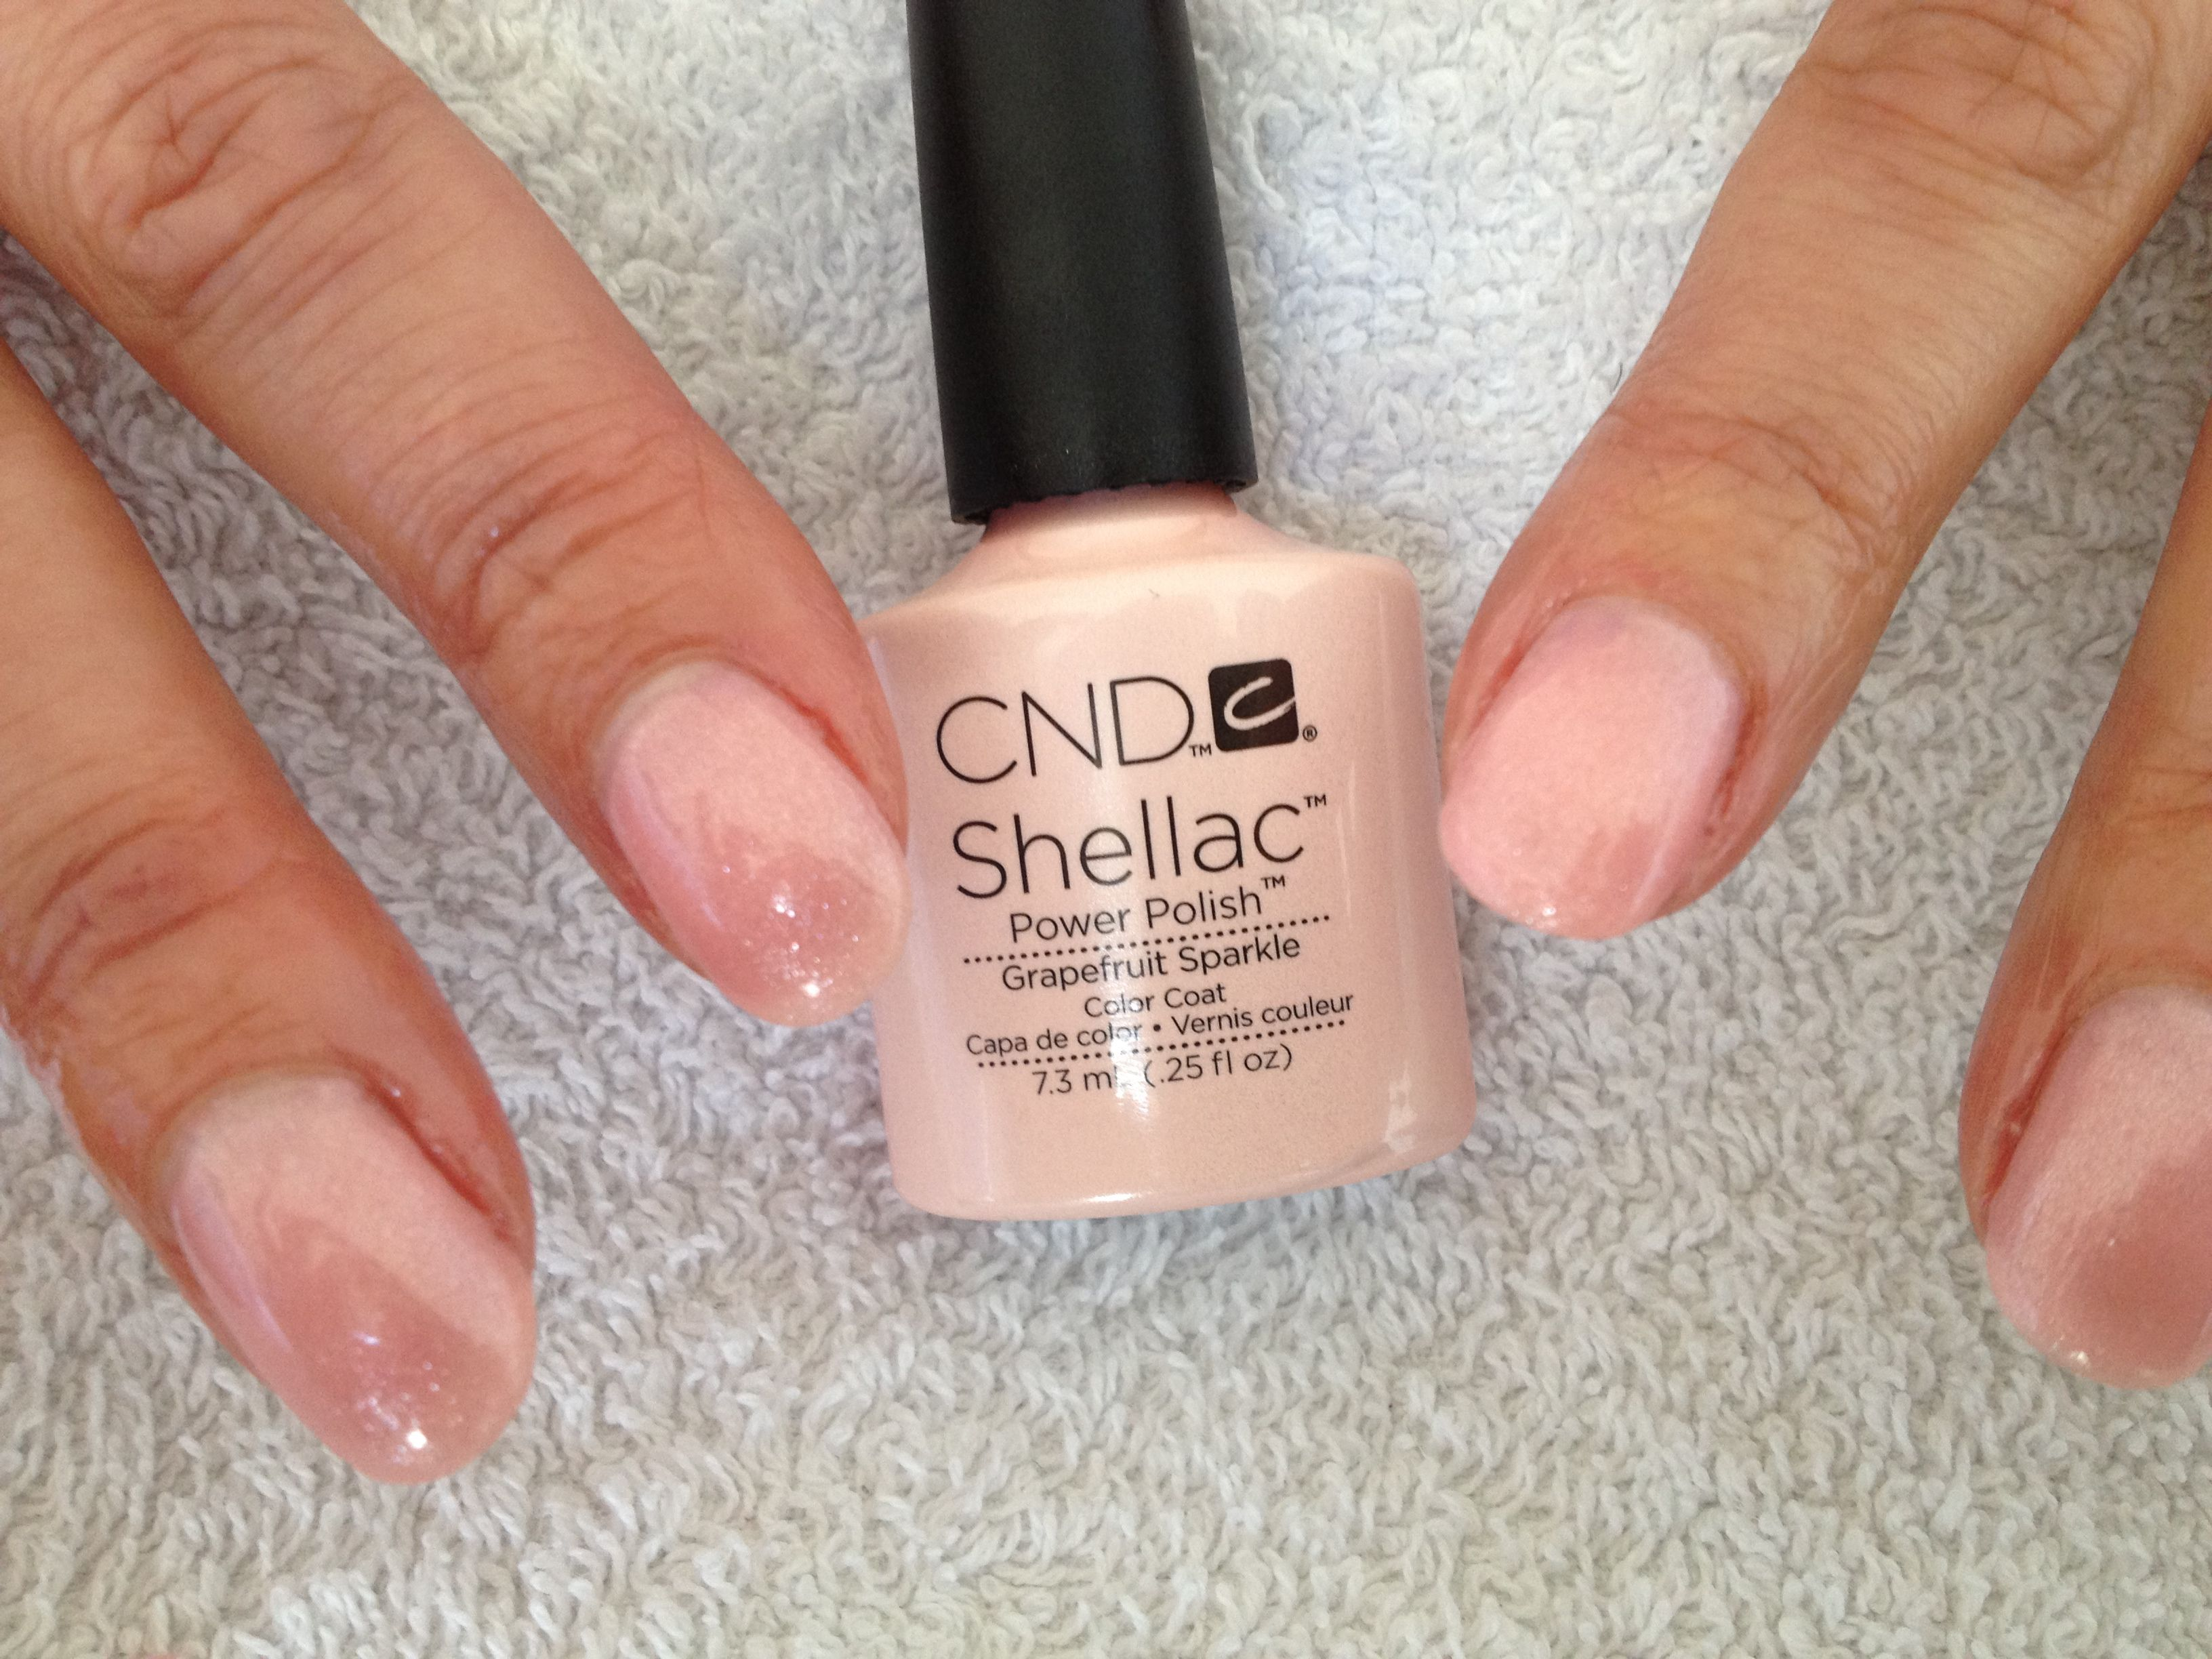 CND Shellac Grapefruit sparkle | Nails | Pinterest | Mafalda